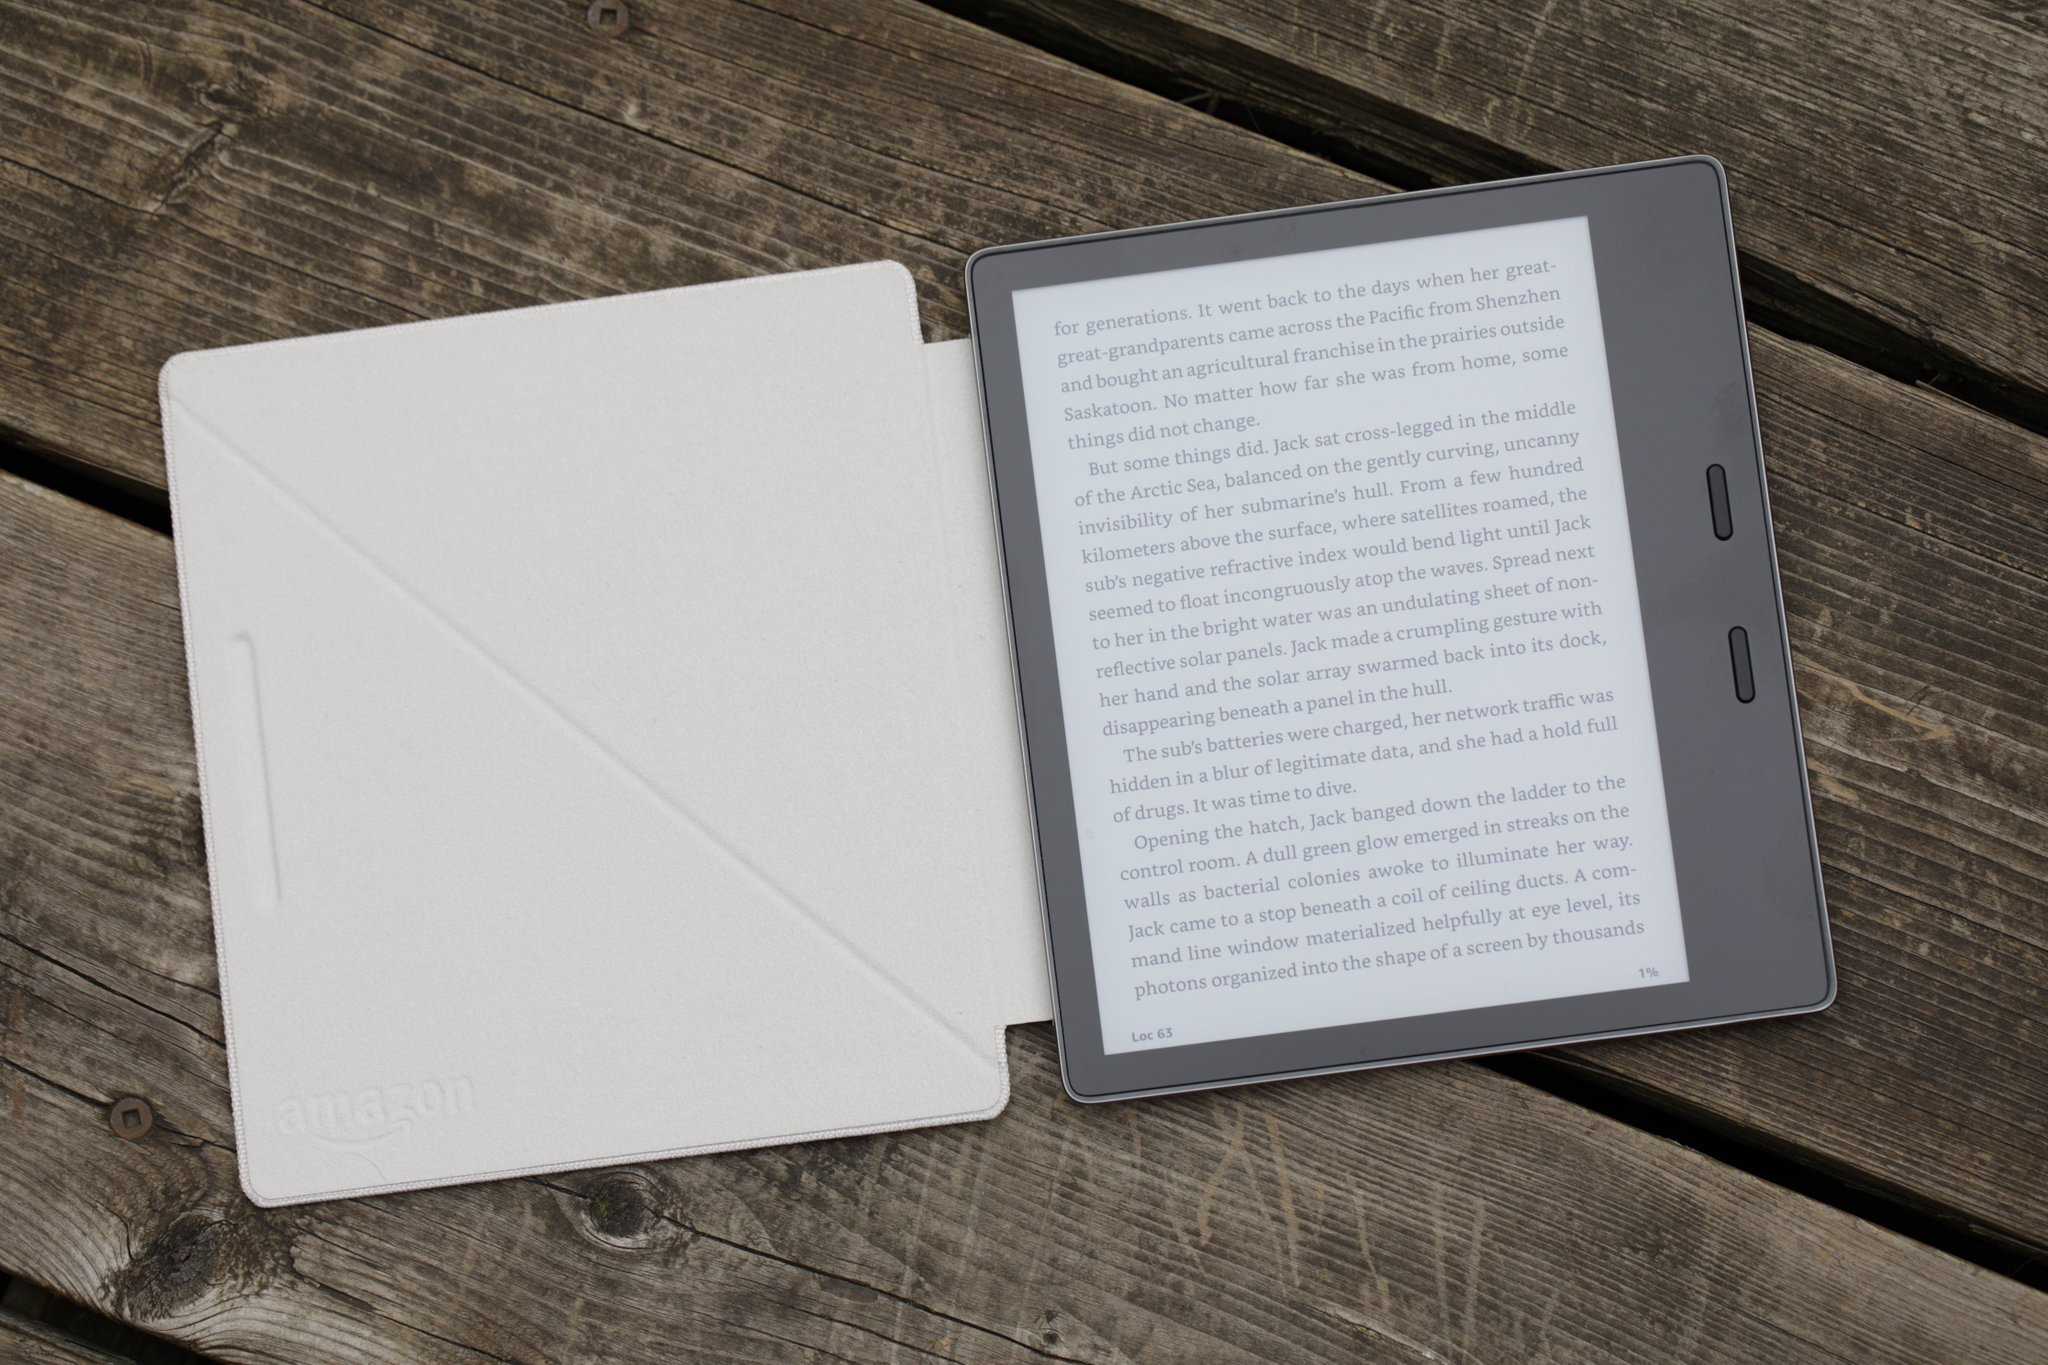 The new Kindle Oasis is my dream e-reader https://t.co/dmloFUnEYK by @etherington https://t.co/XHmk16COkk